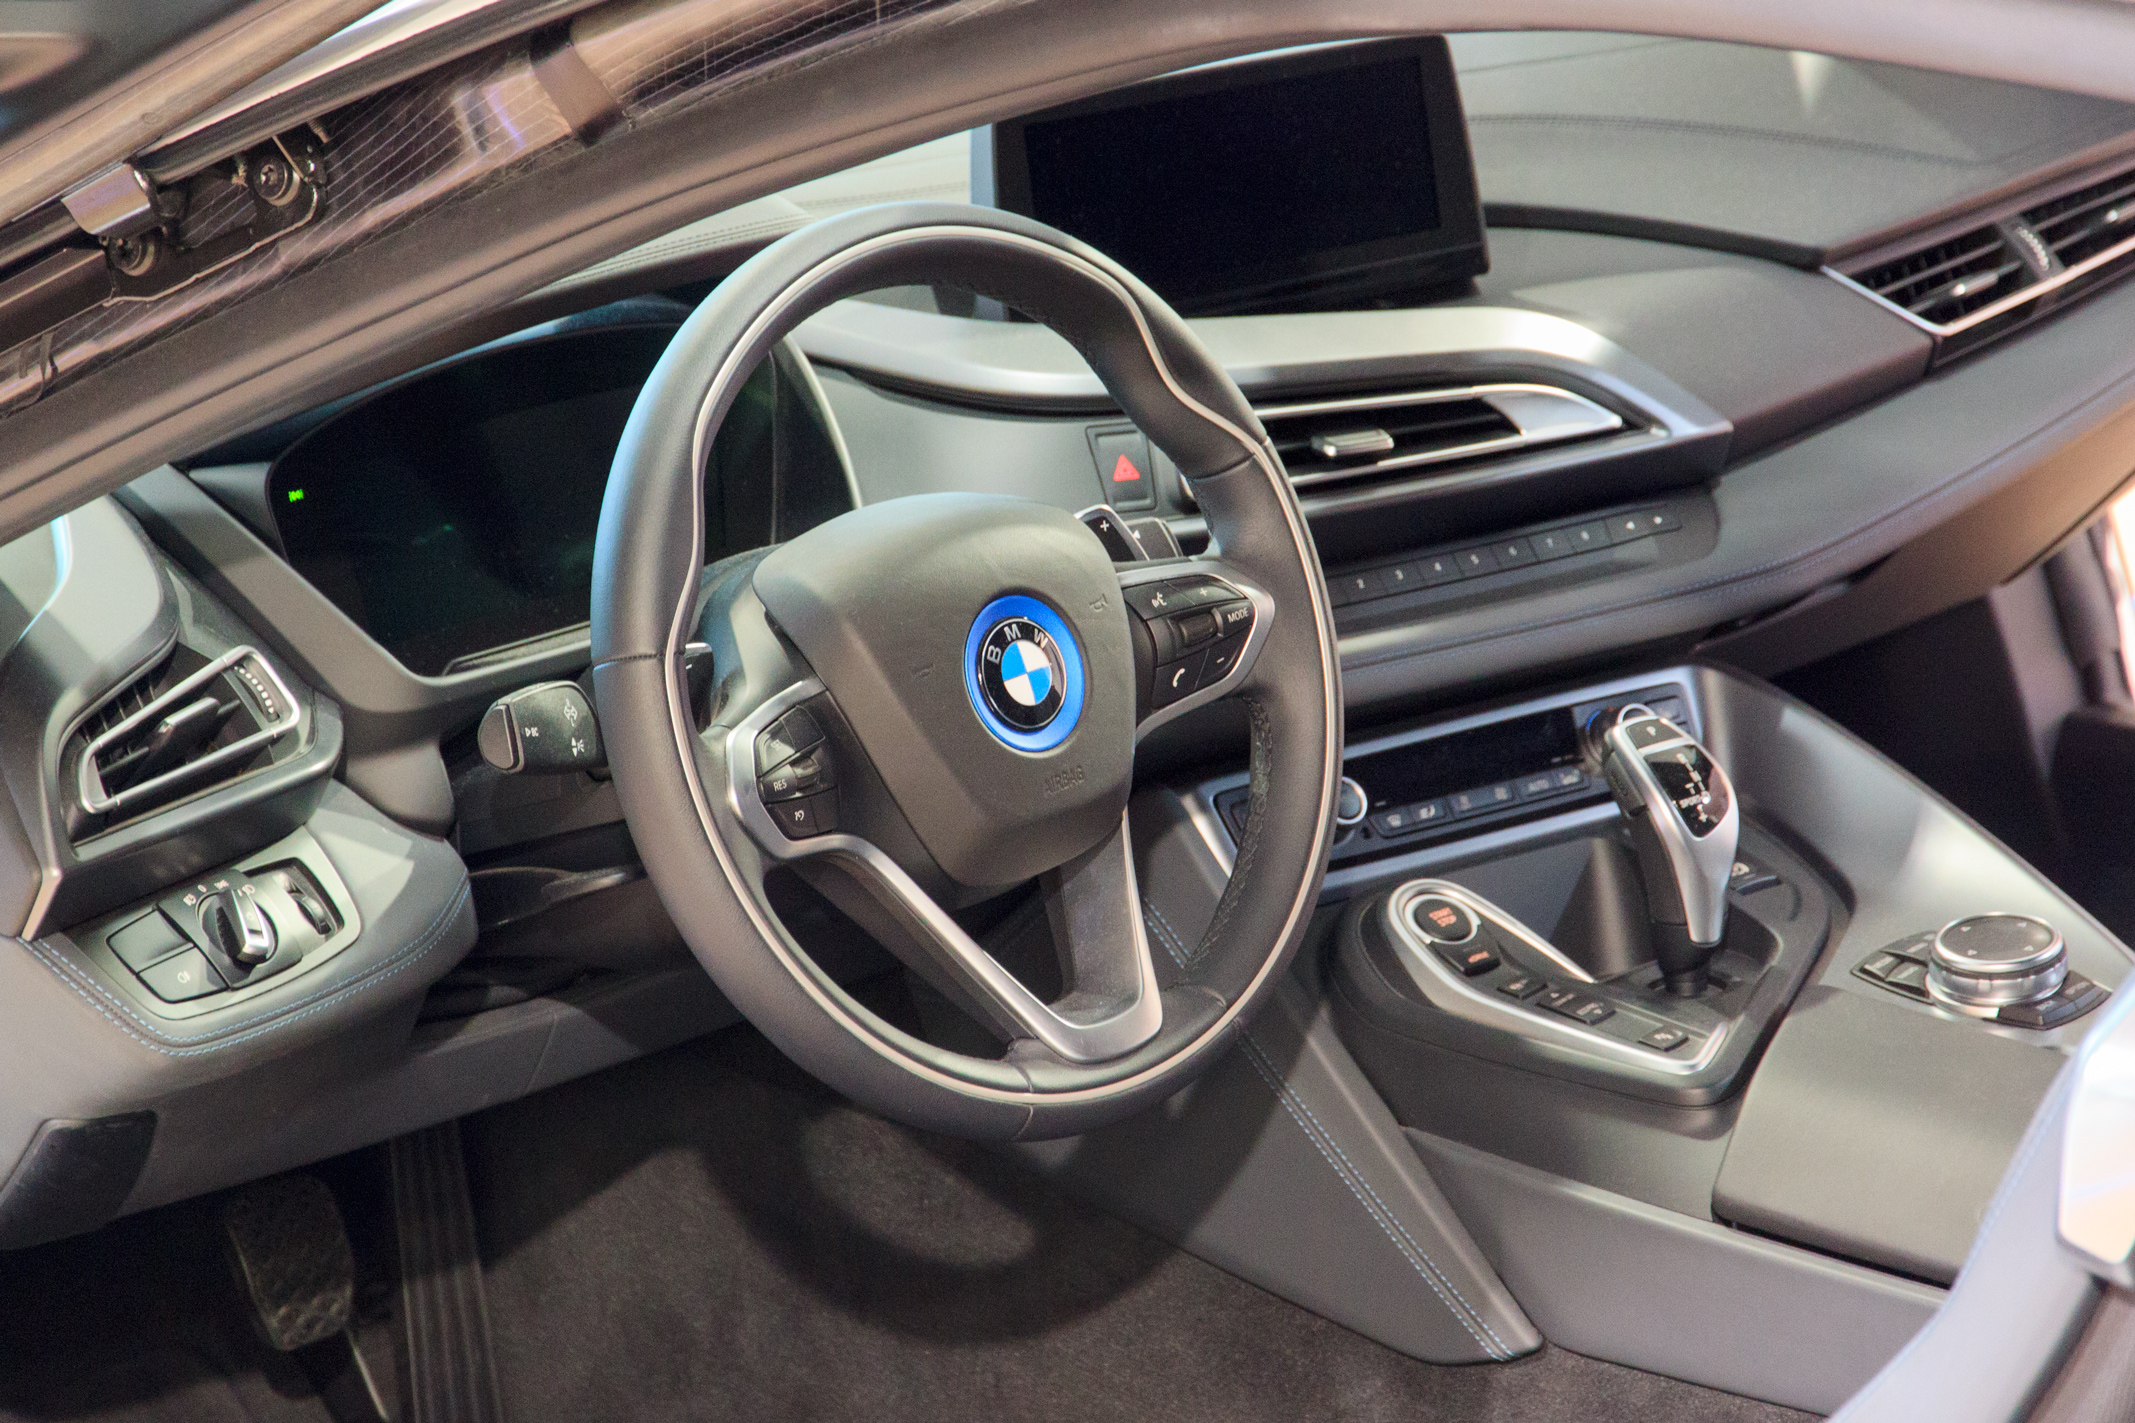 archivo munich bmw welt i8 wikipedia la enciclopedia libre. Black Bedroom Furniture Sets. Home Design Ideas